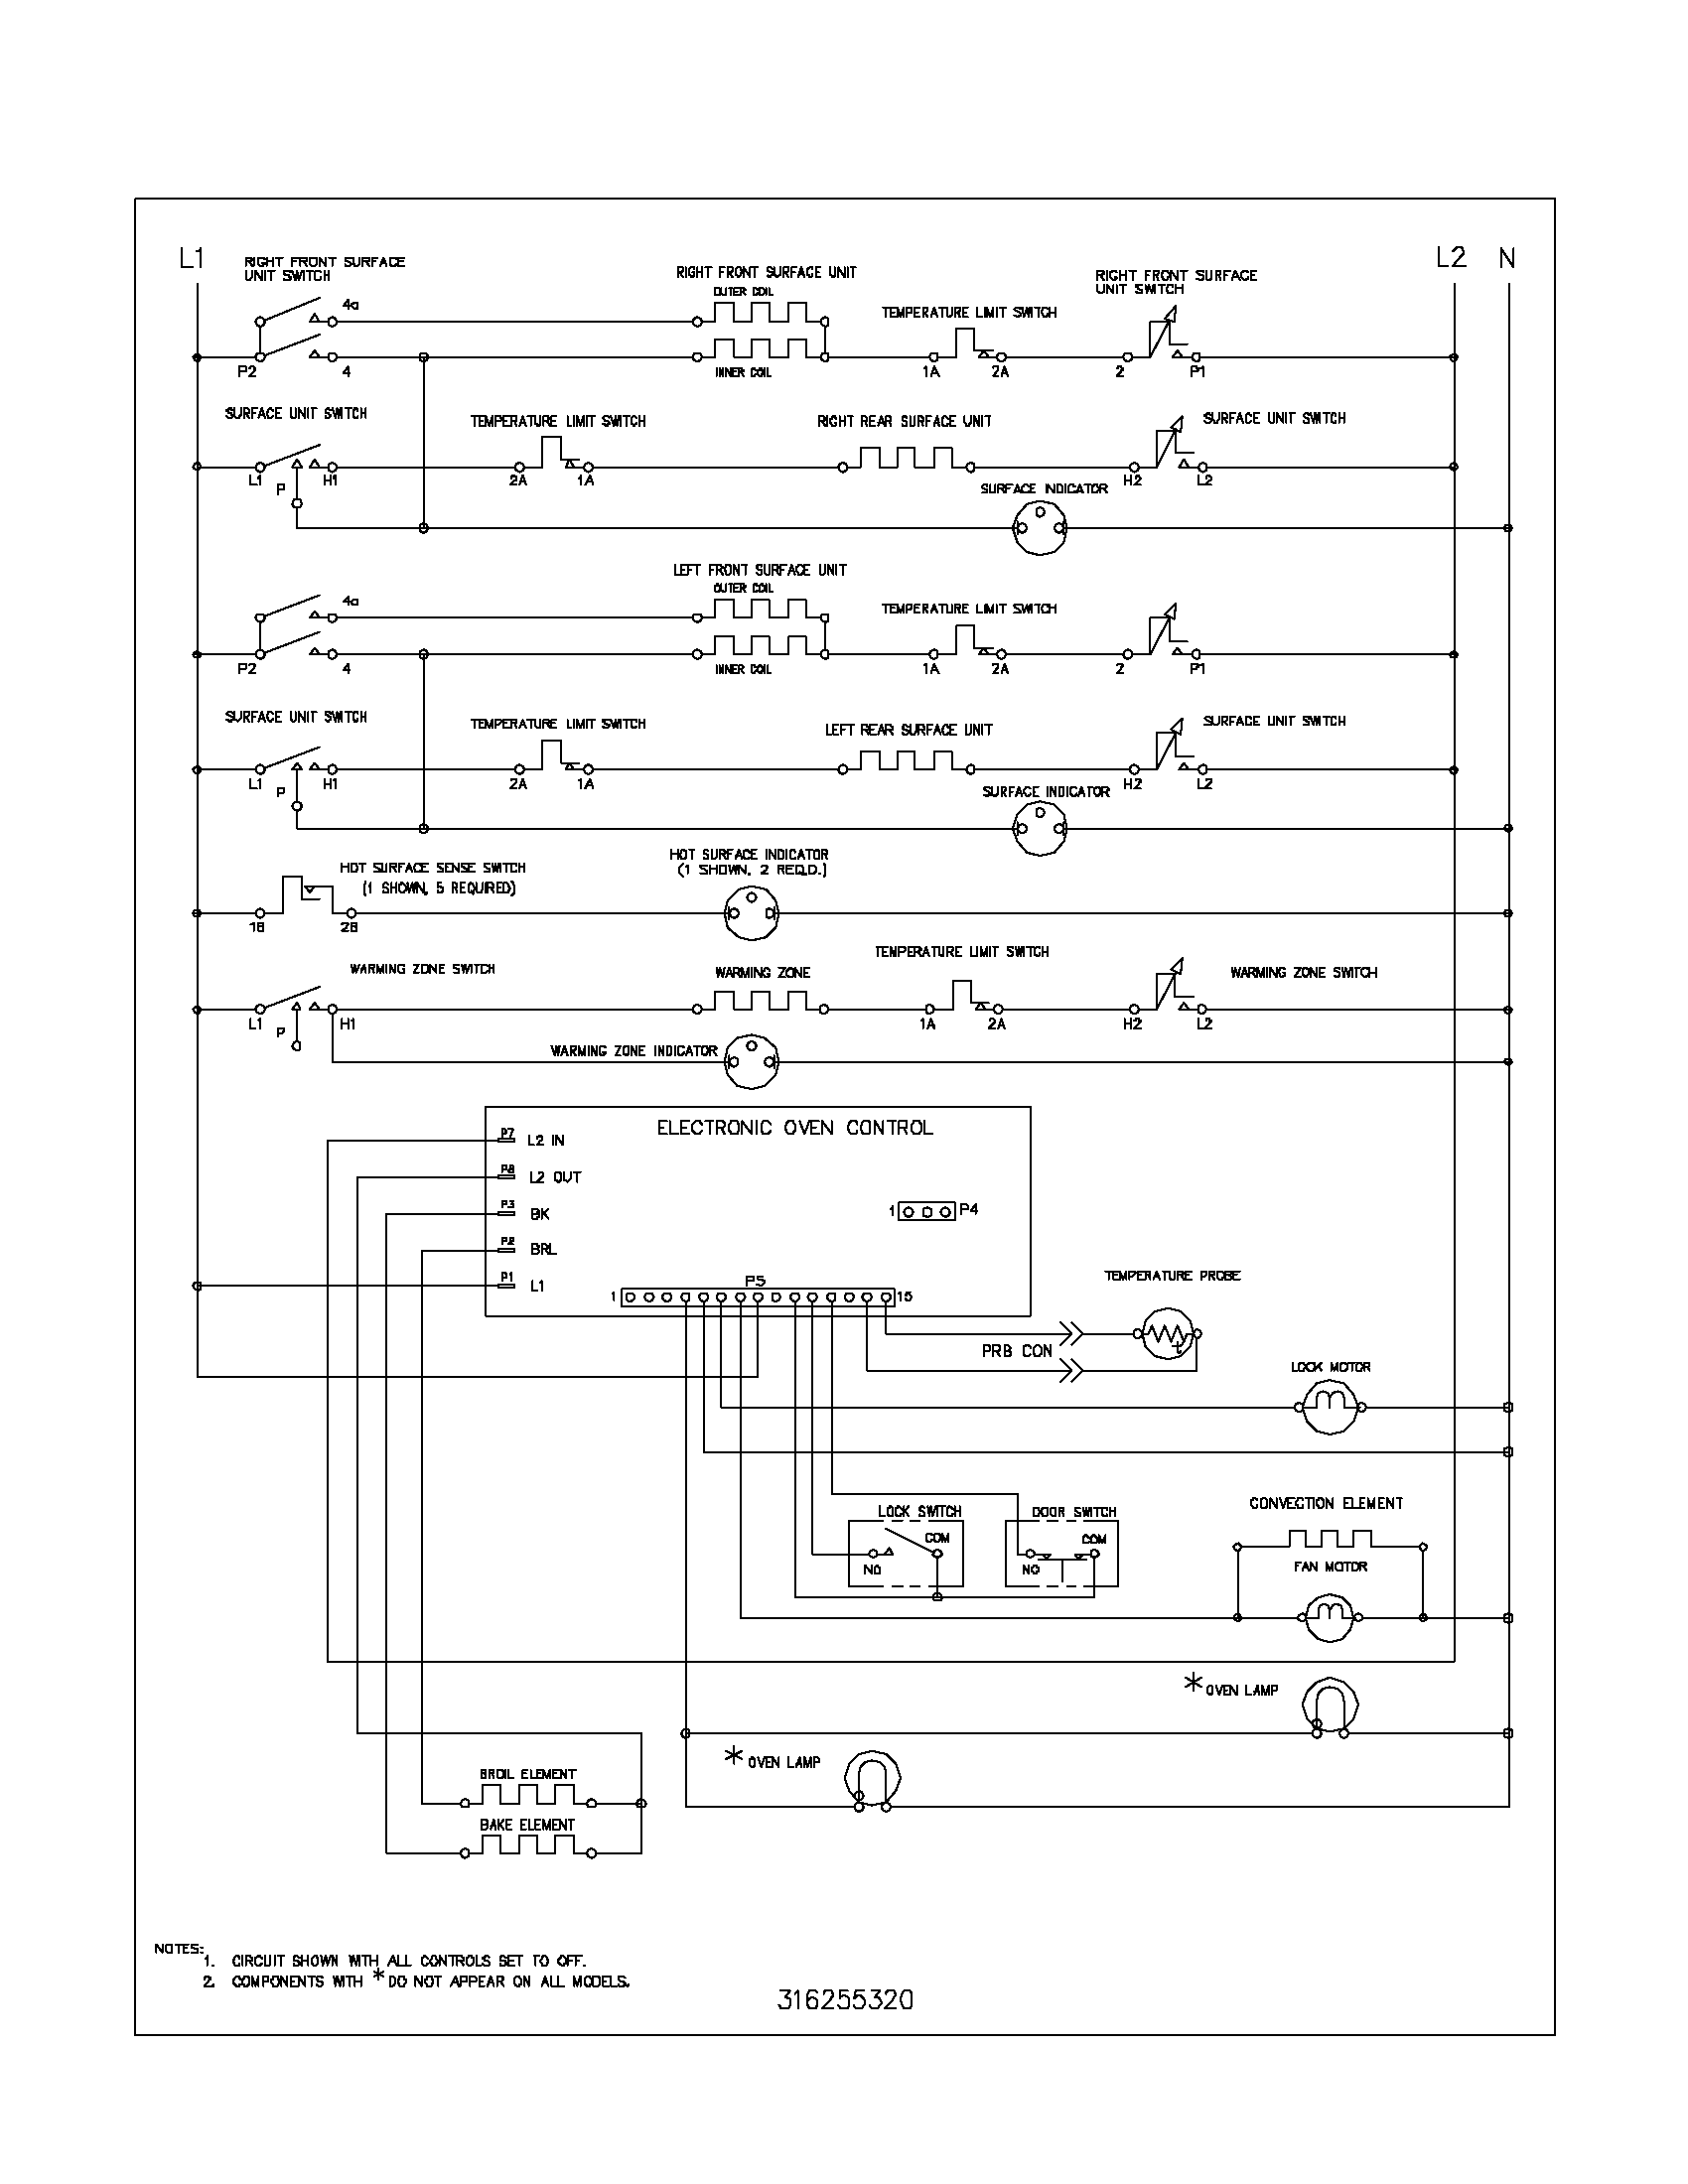 wiring schematic parts electrical question page 2 irv2 forums Newmar Dutch Star 4018 Model at gsmx.co